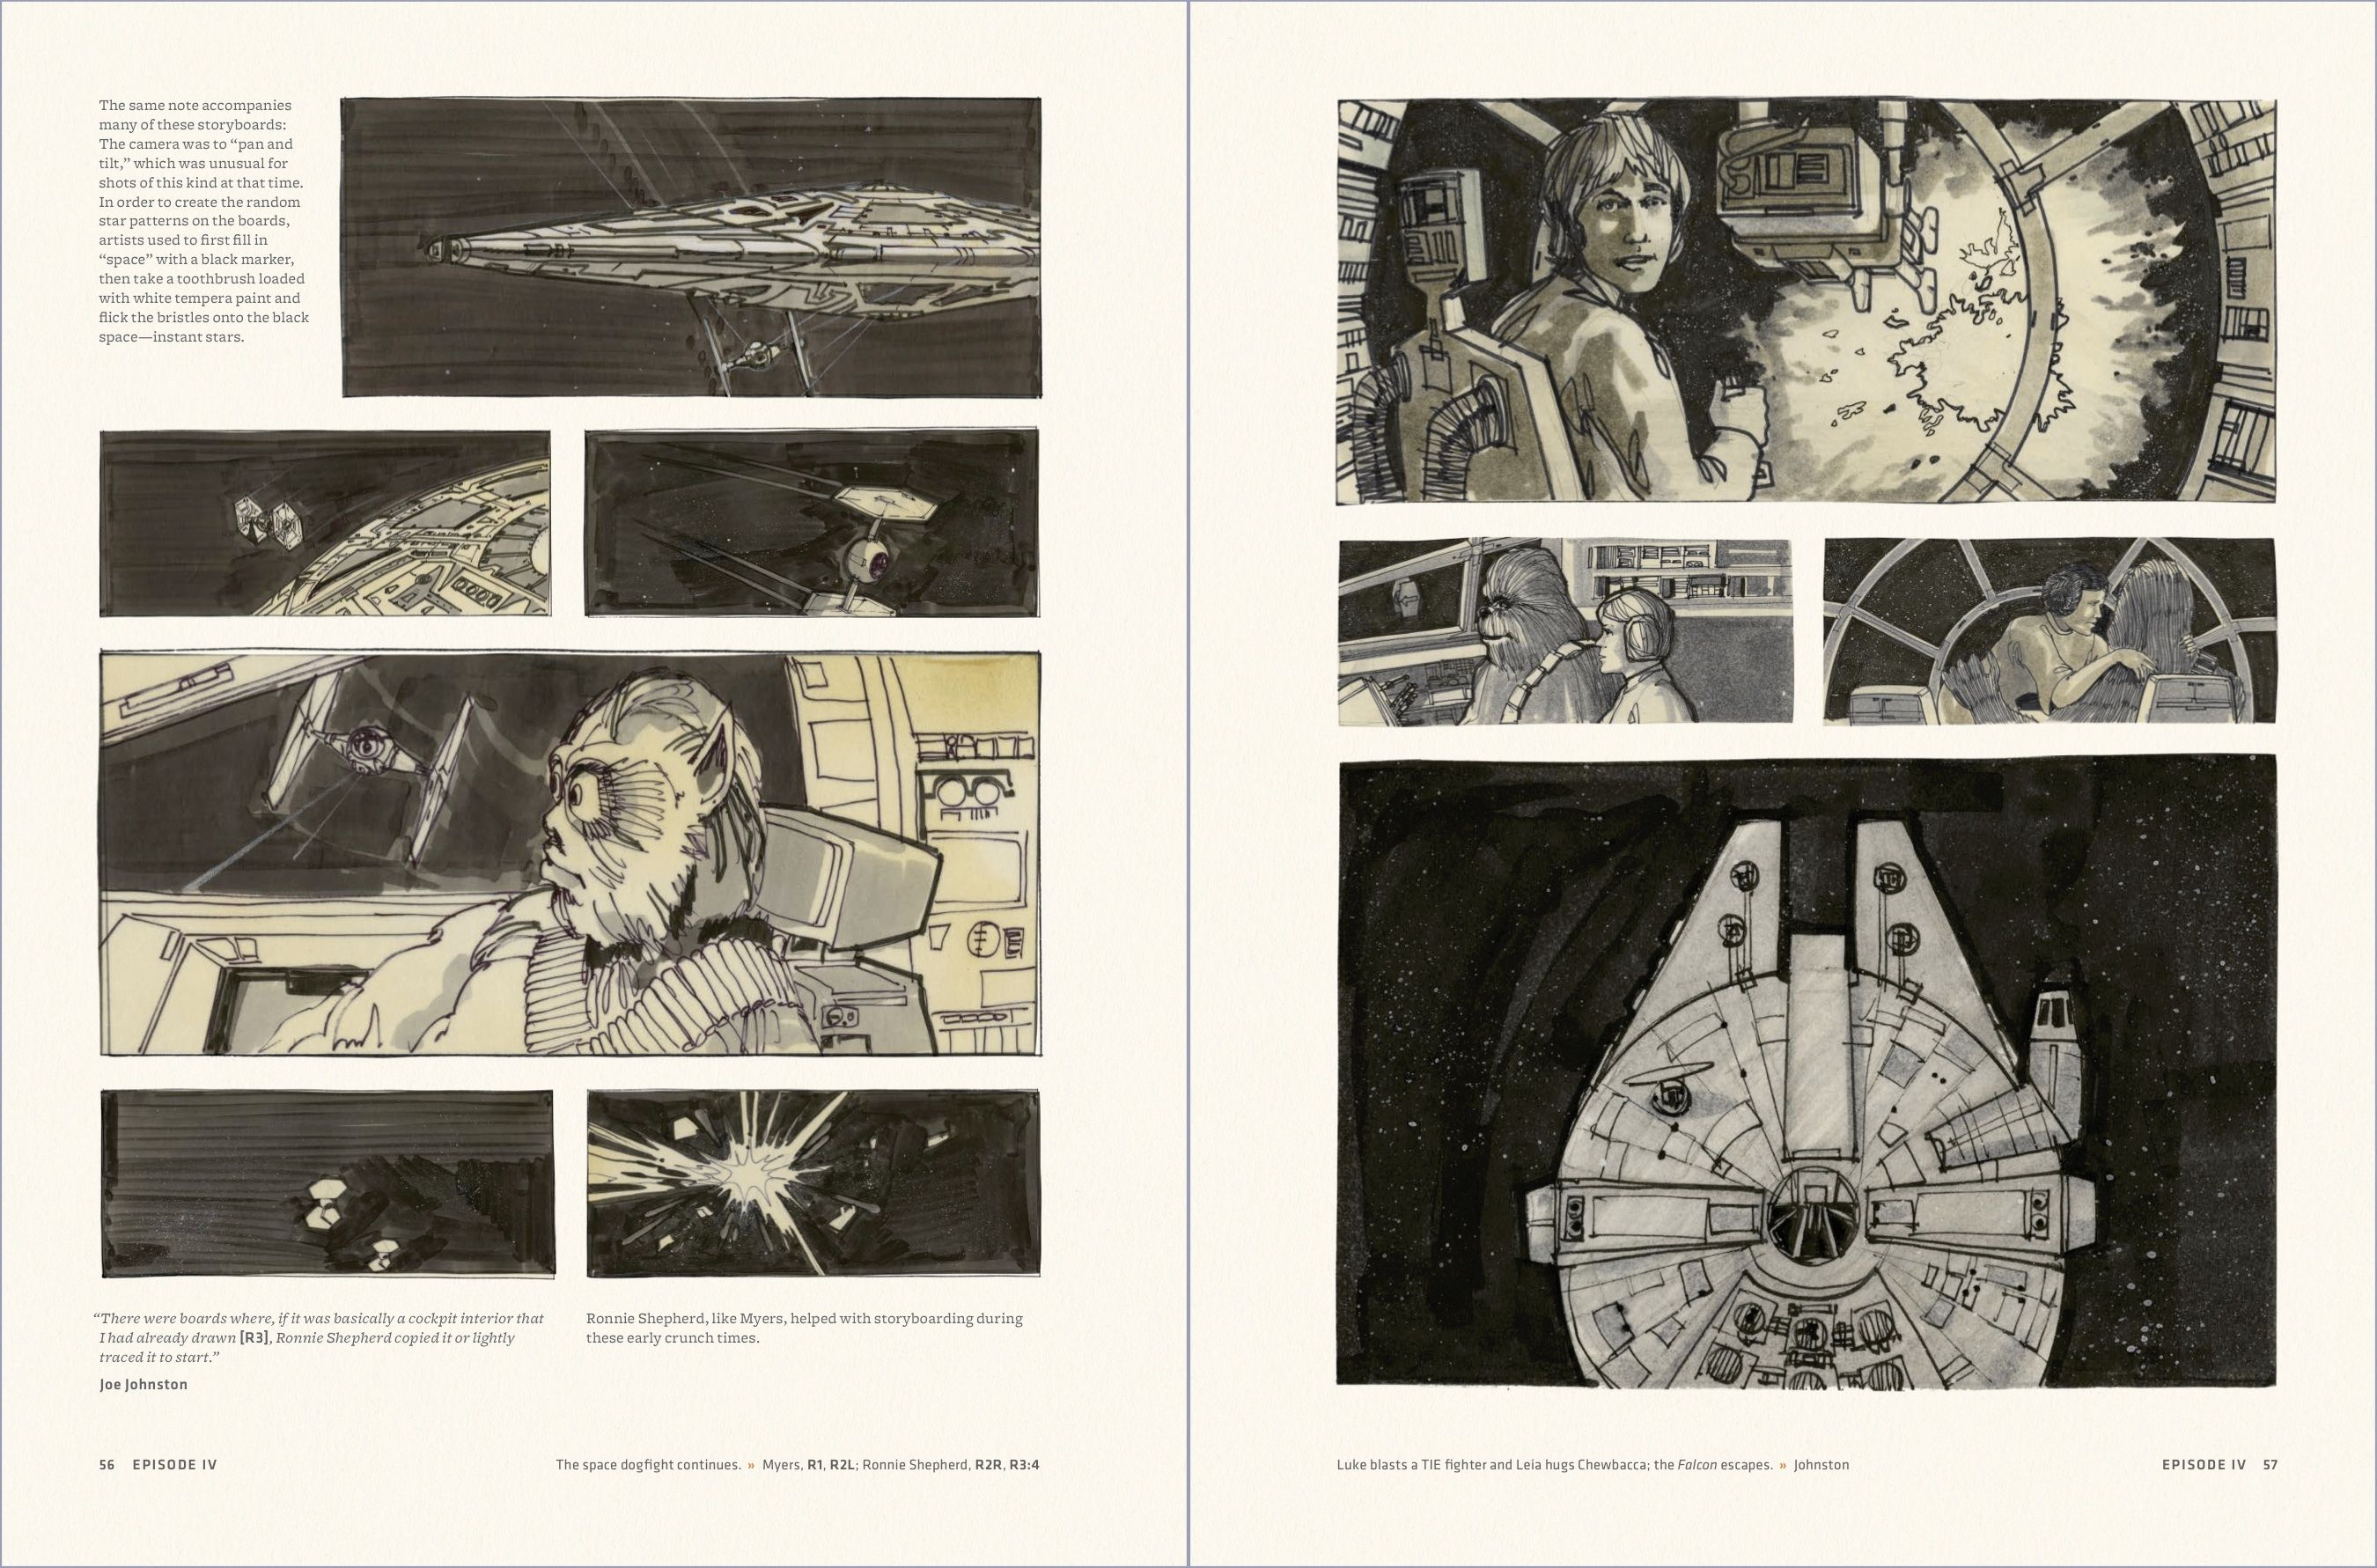 Star Wars Storyboards Google Search Star Wars Episodes Storyboard Star Wars Episode Iv